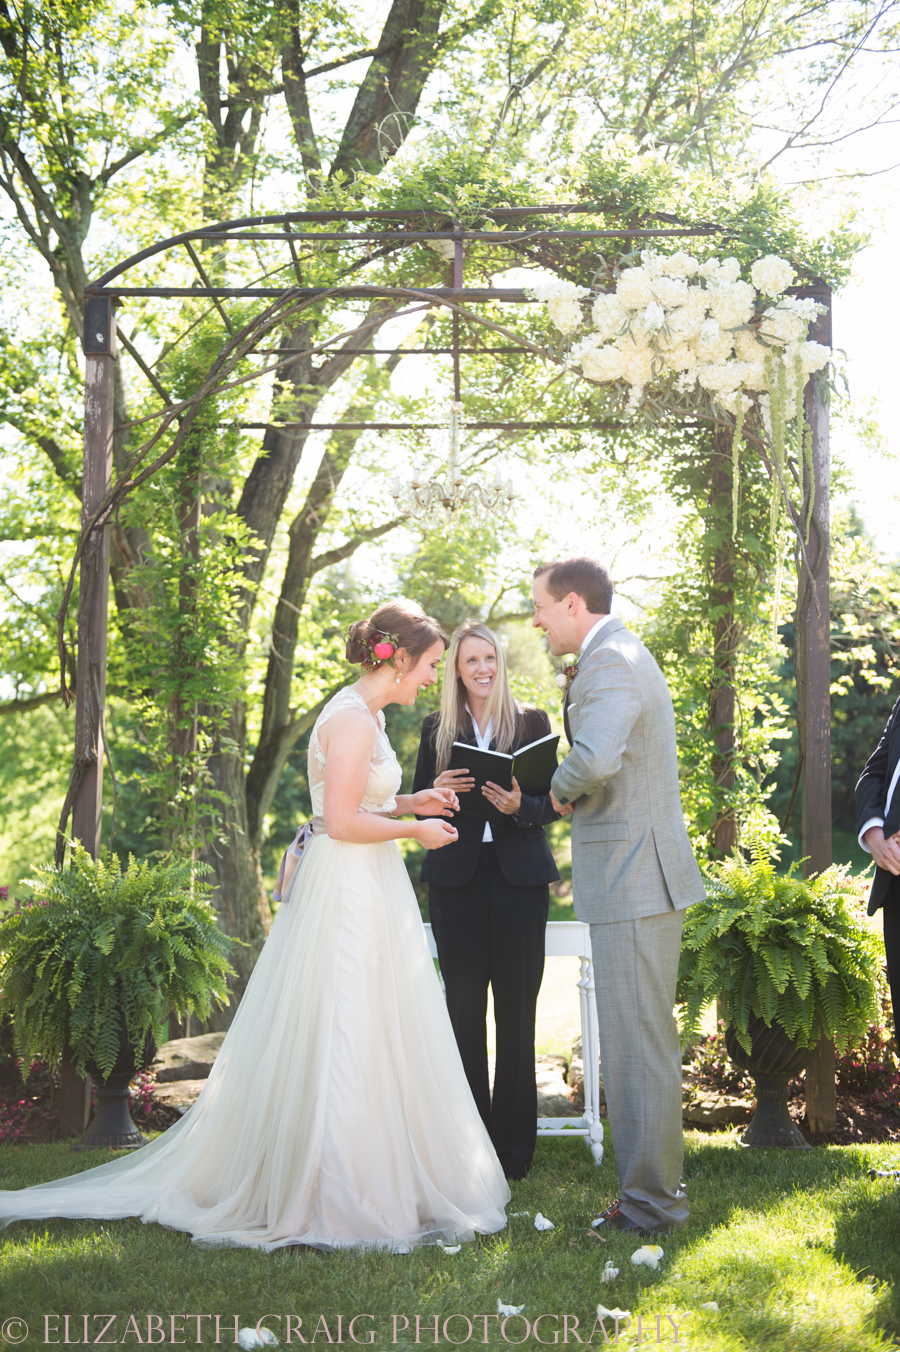 Shady Elms Farm Weddings and Receptions Elizabeth Craig Photography-0114